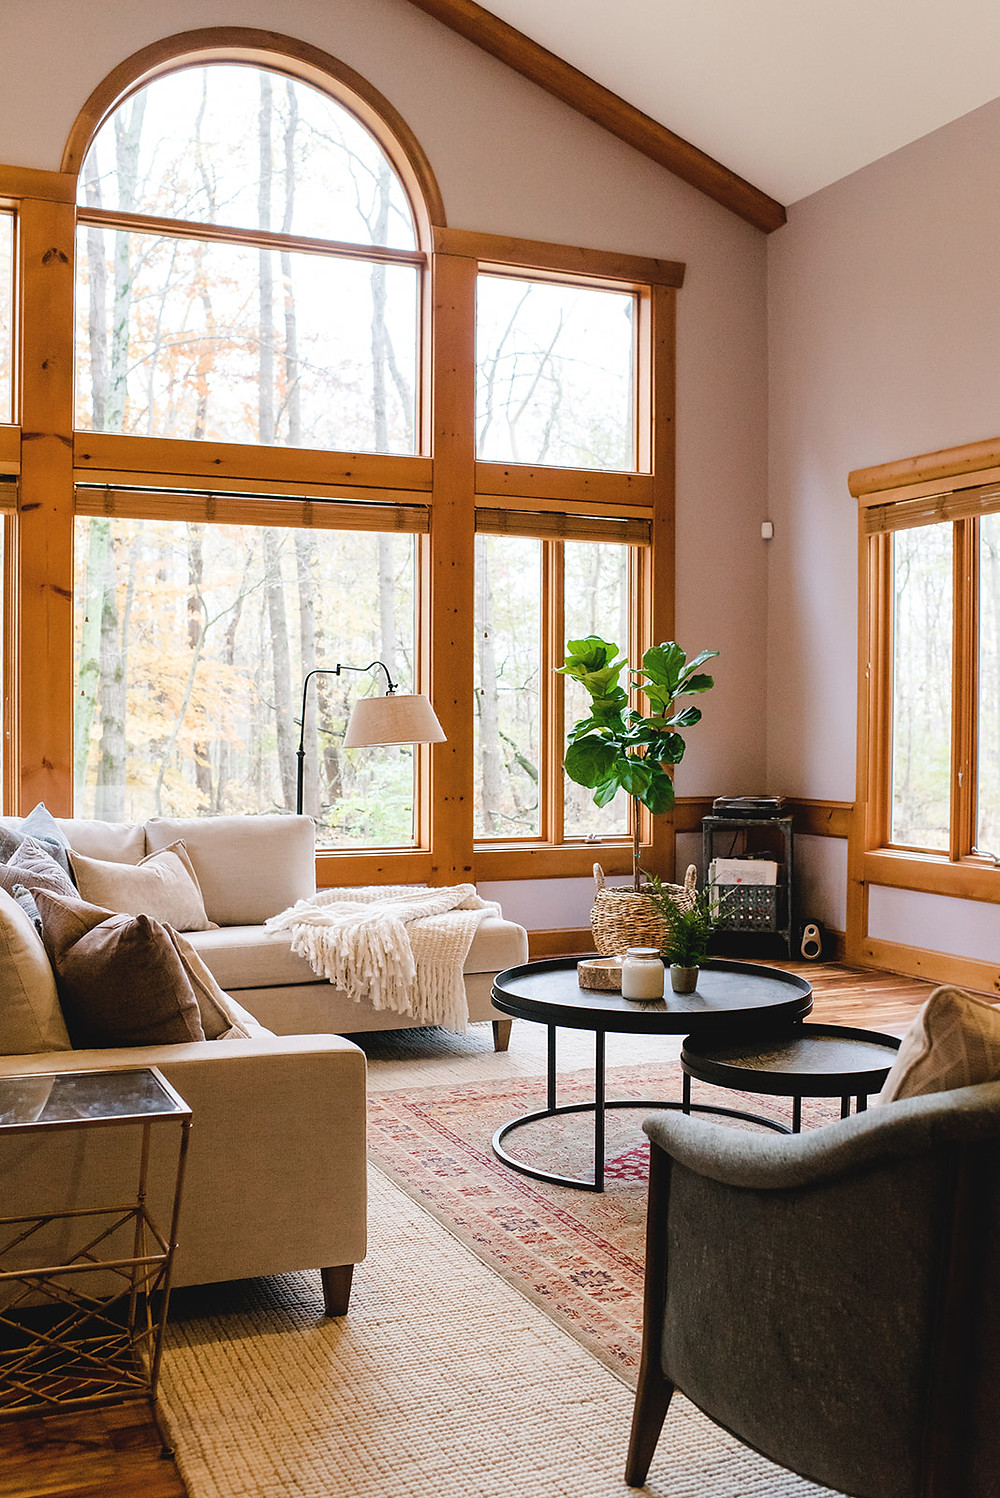 The cottage style living room.